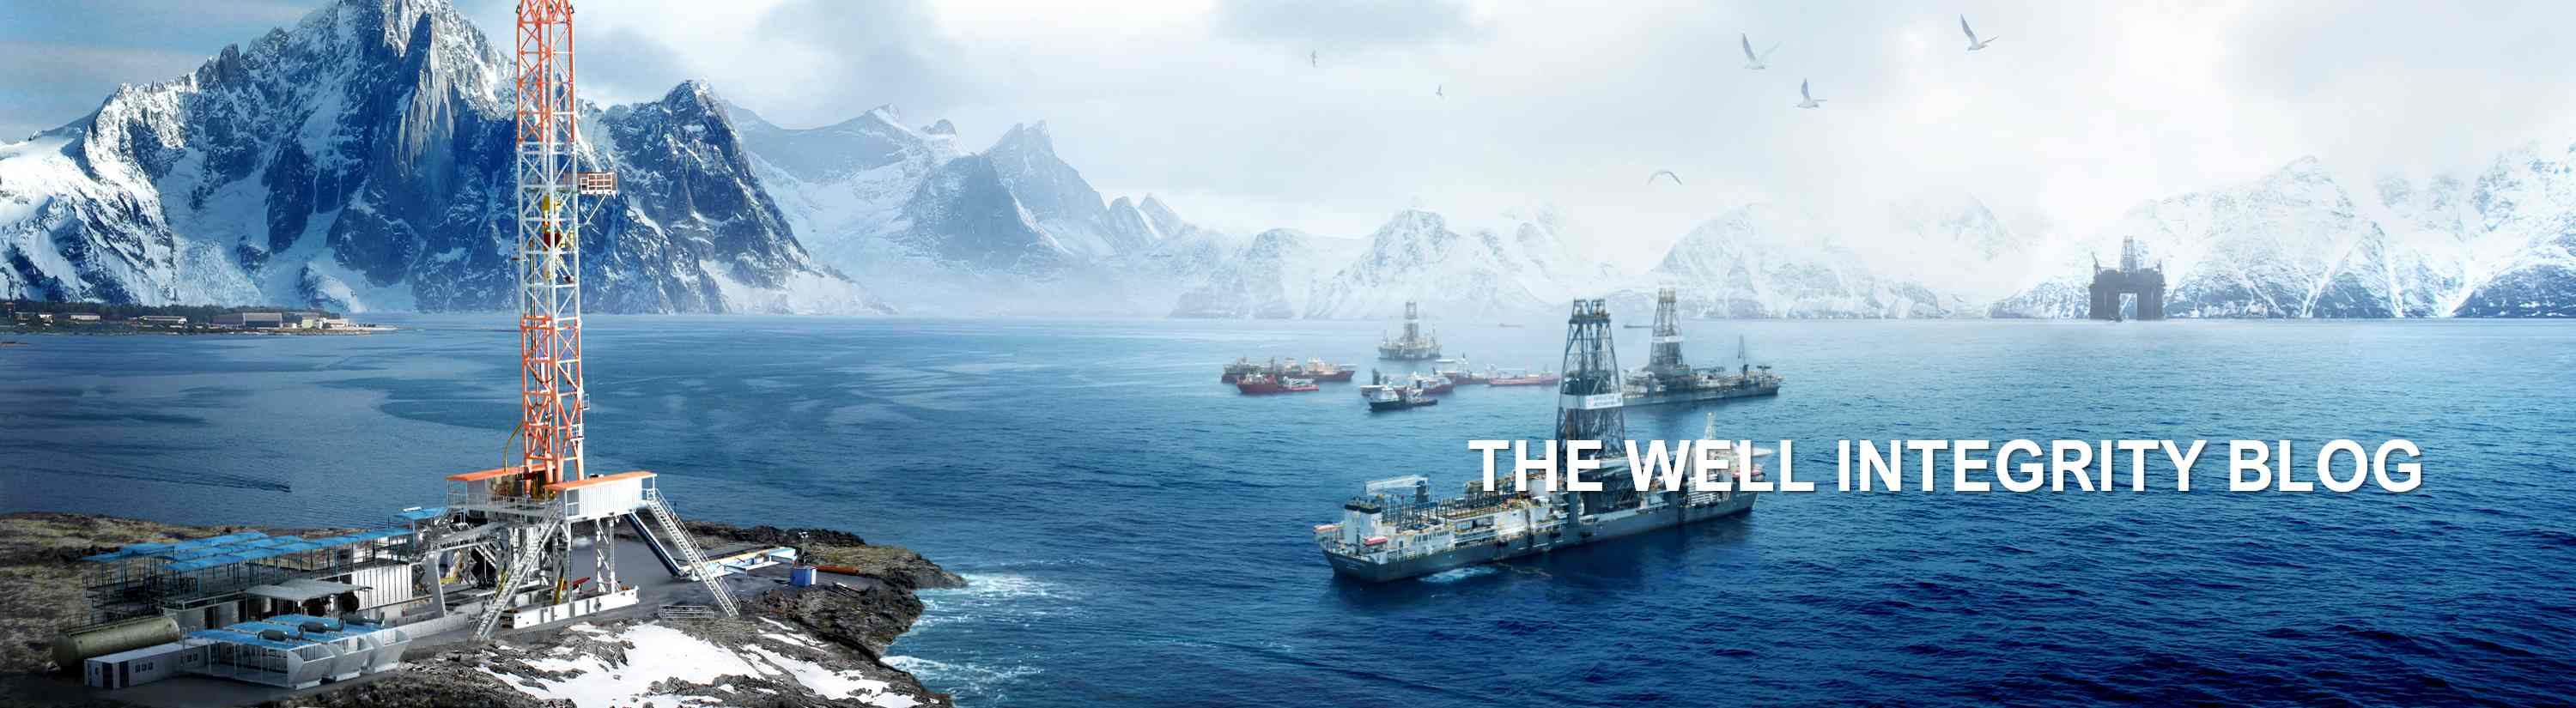 The Well Integrity Blog by Wellcem Arctic